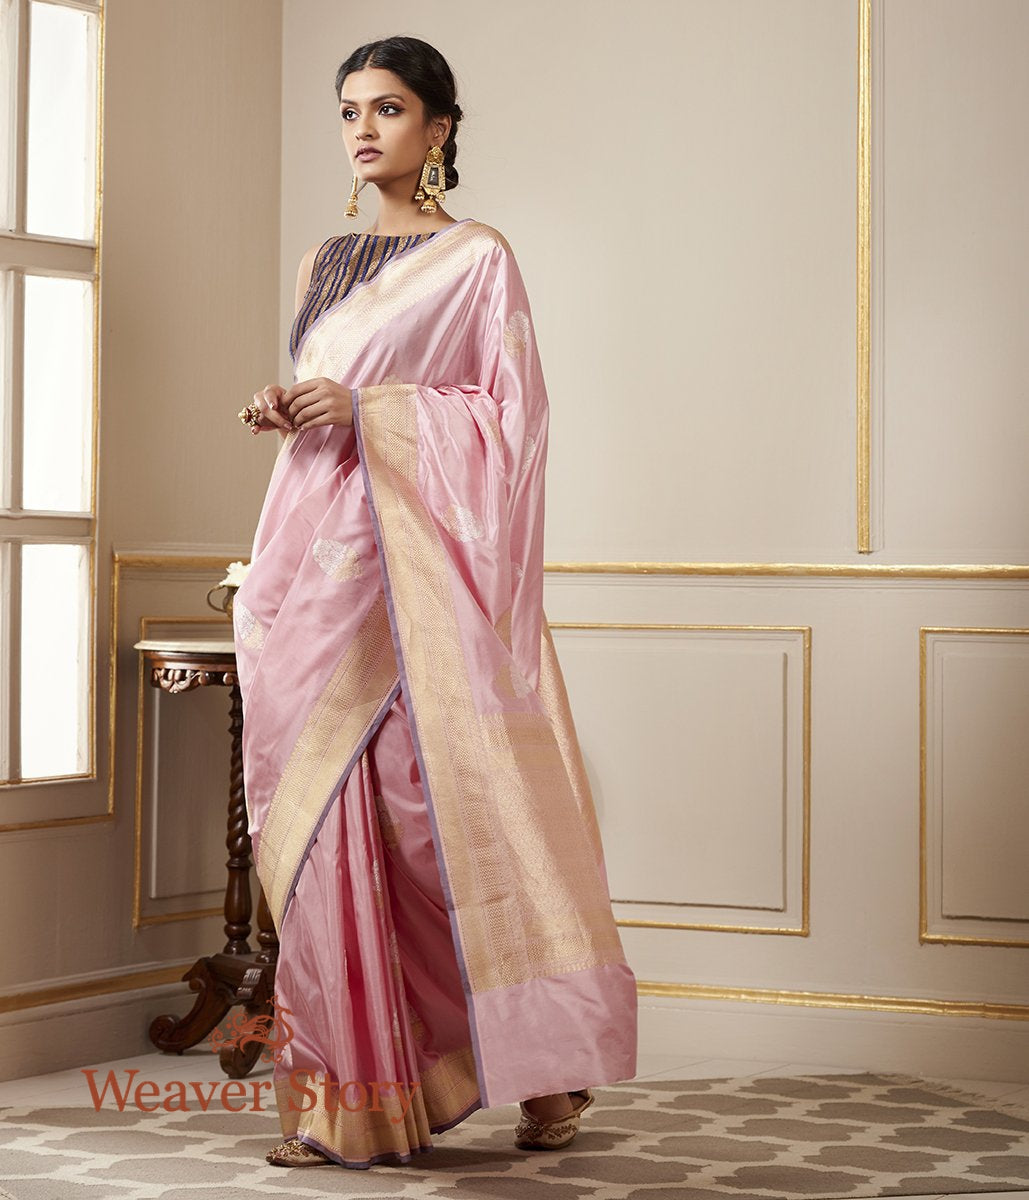 Handwoven Soft Pink Katan Silk Banarasi Saree with Kadhwa Booti and a Mauve Selvedge